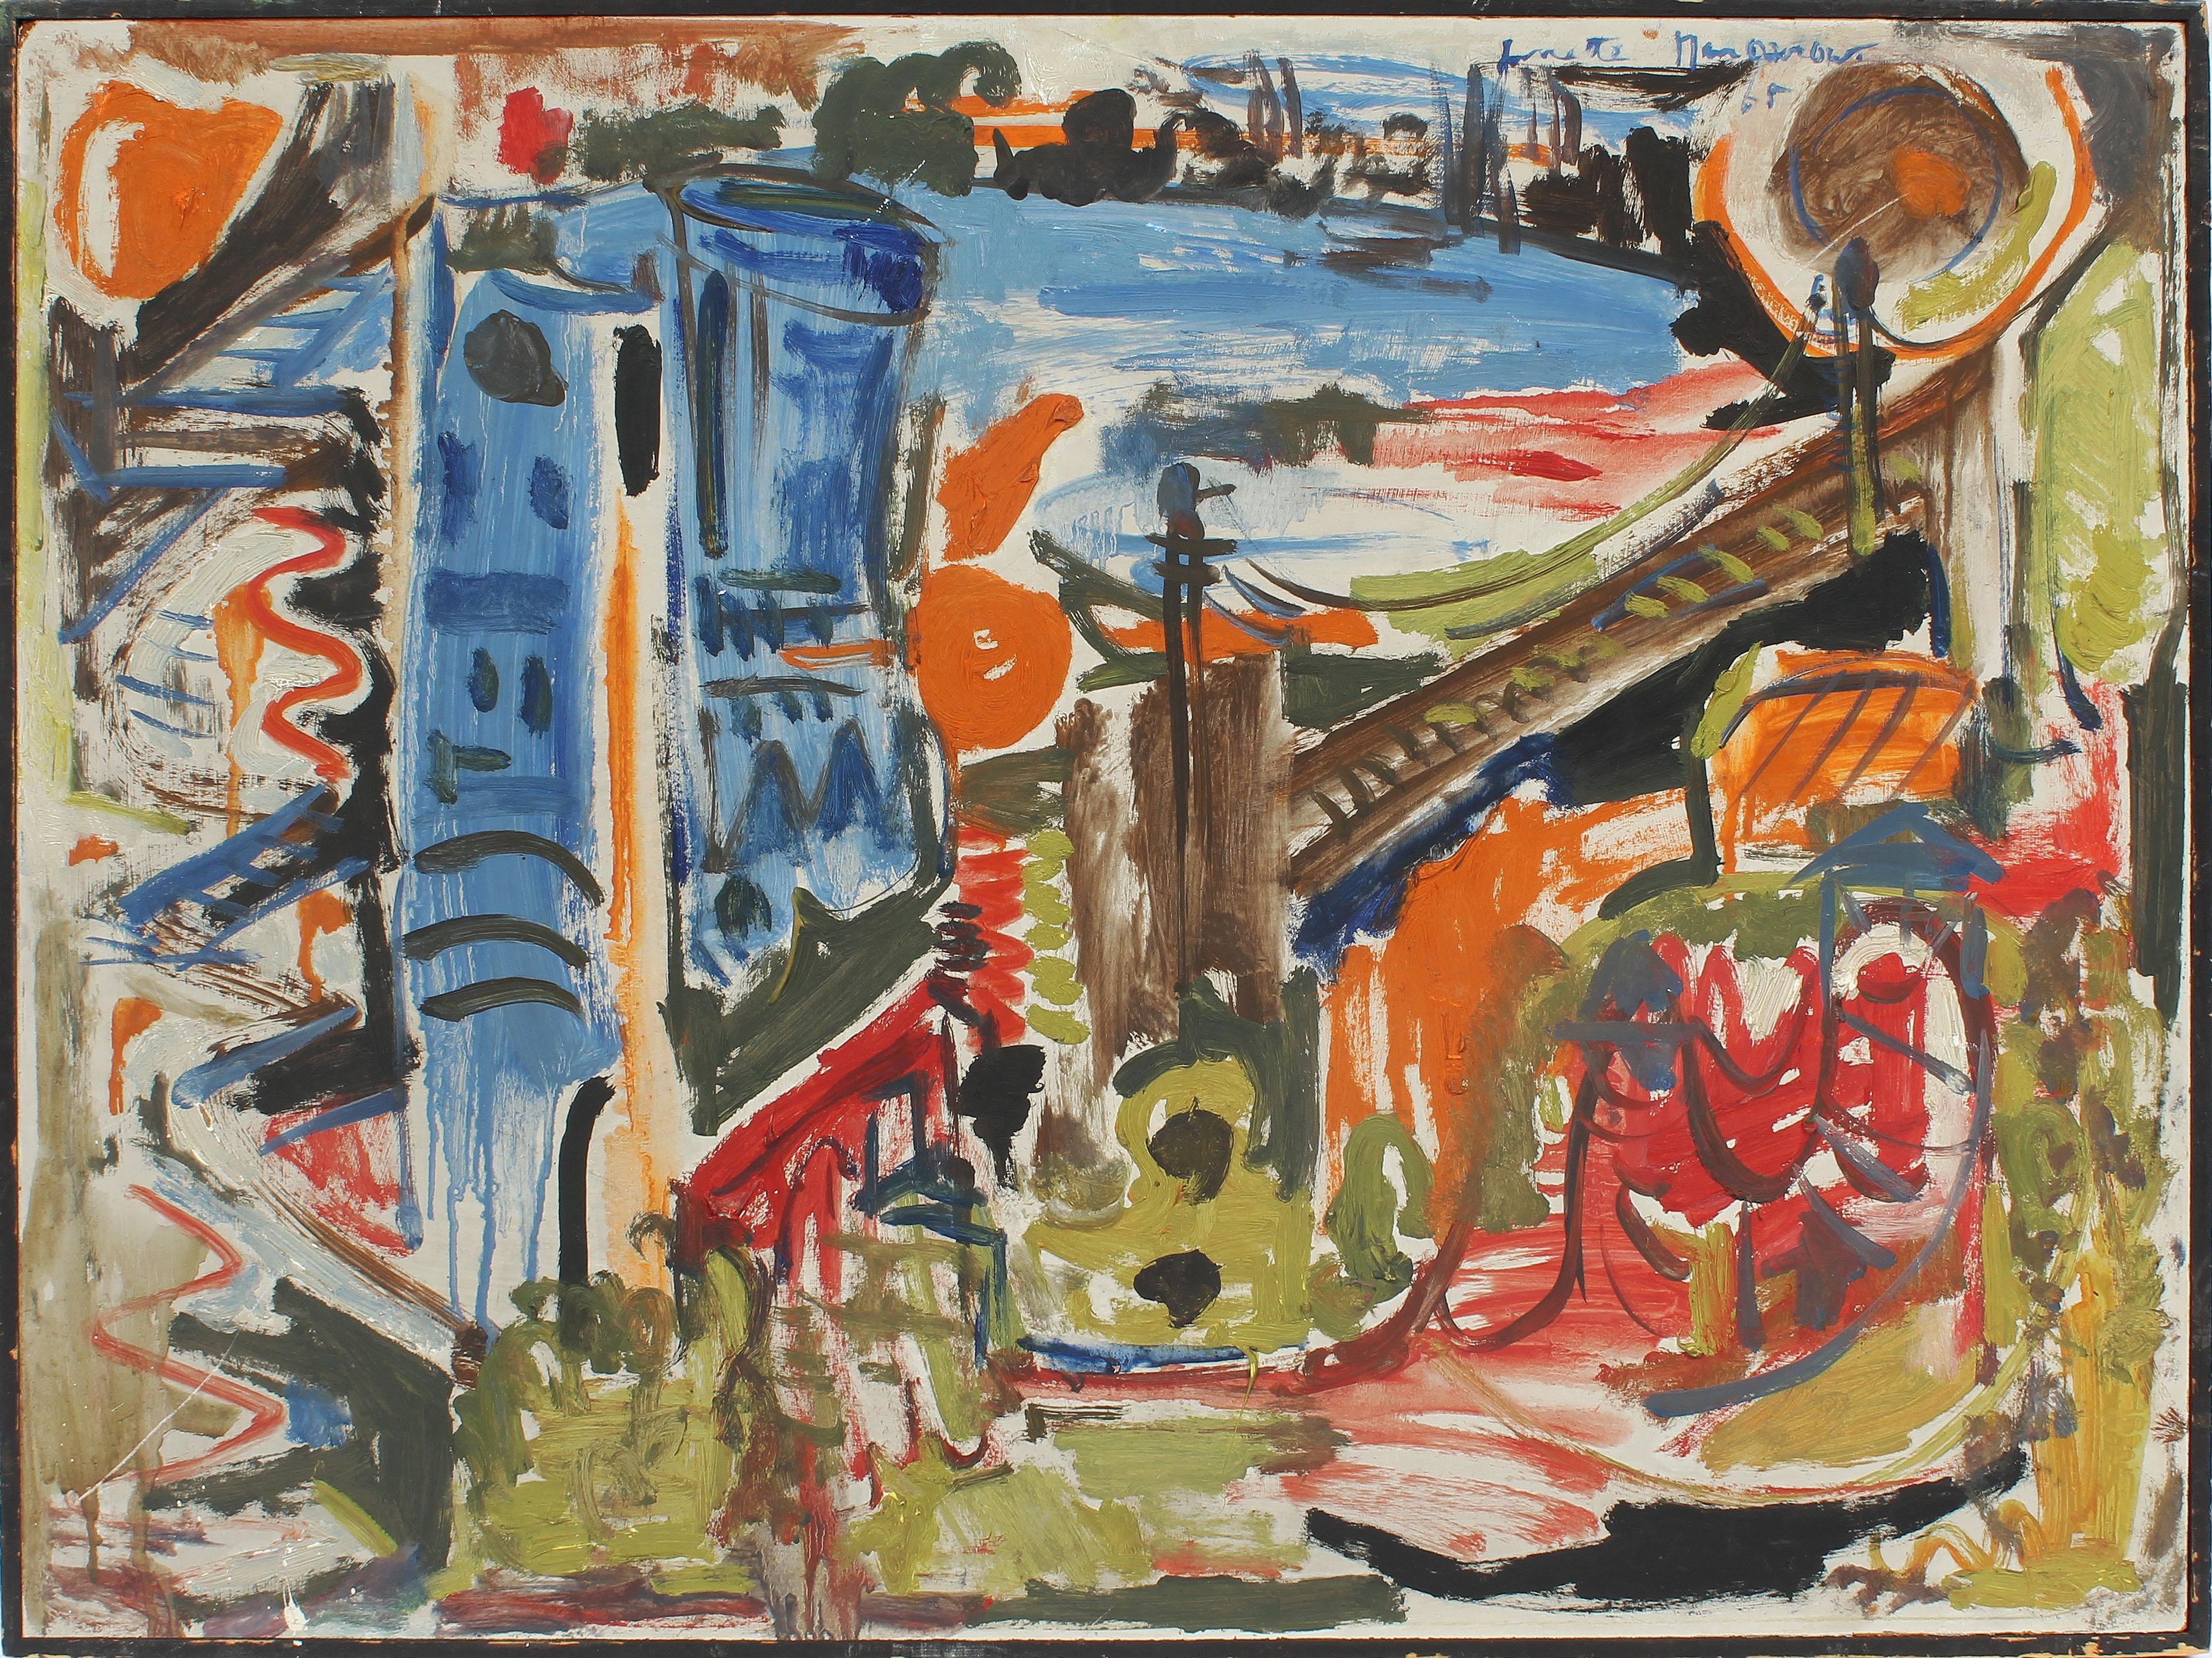 Vintage Abstract Expressionist New York City School Brooklyn Bridge Oil Painting